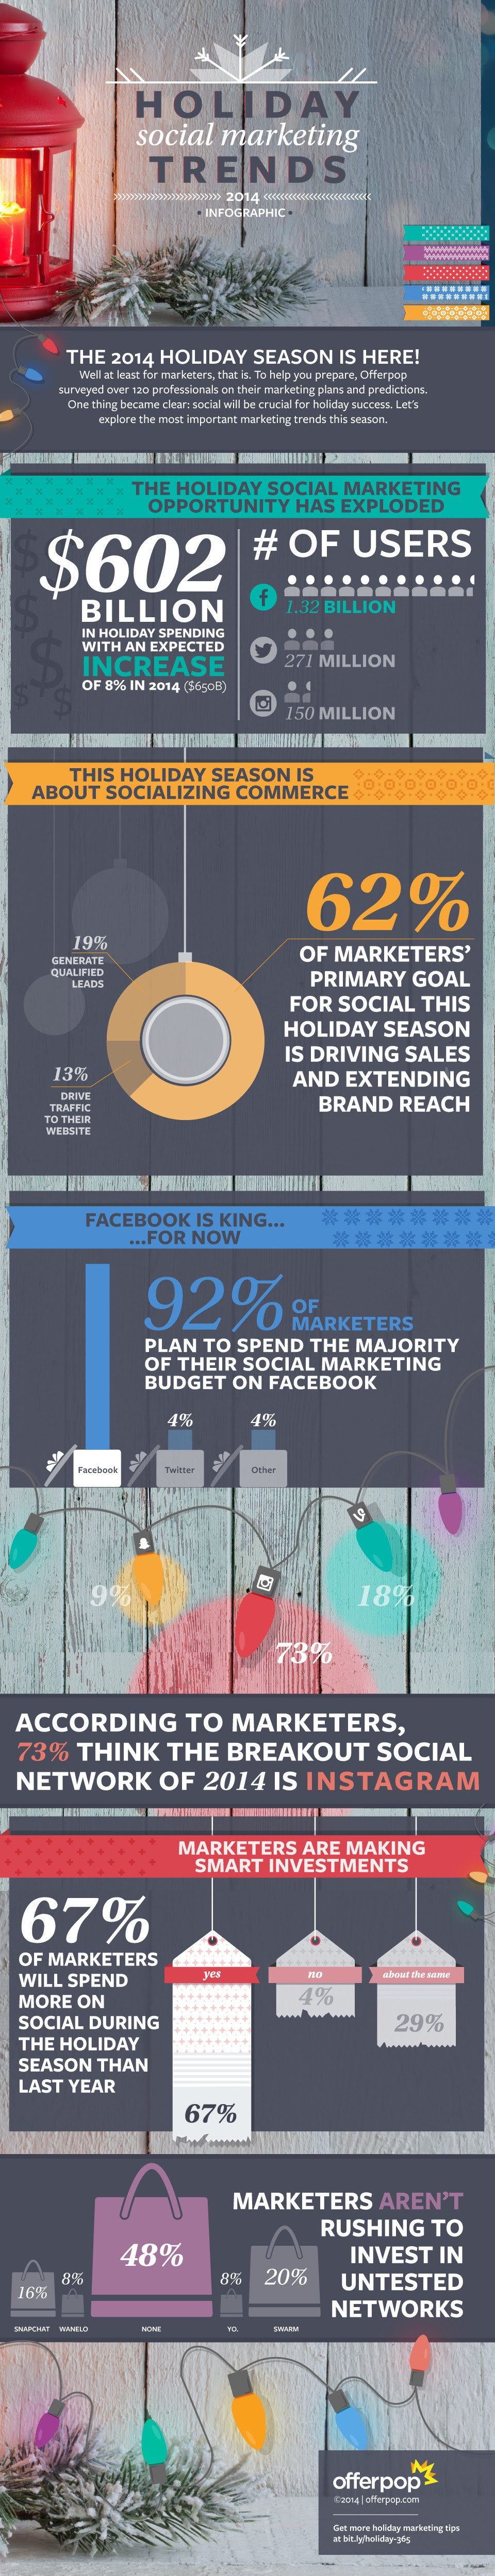 Holiday Social Marketing Trends 2014 - #Infographic